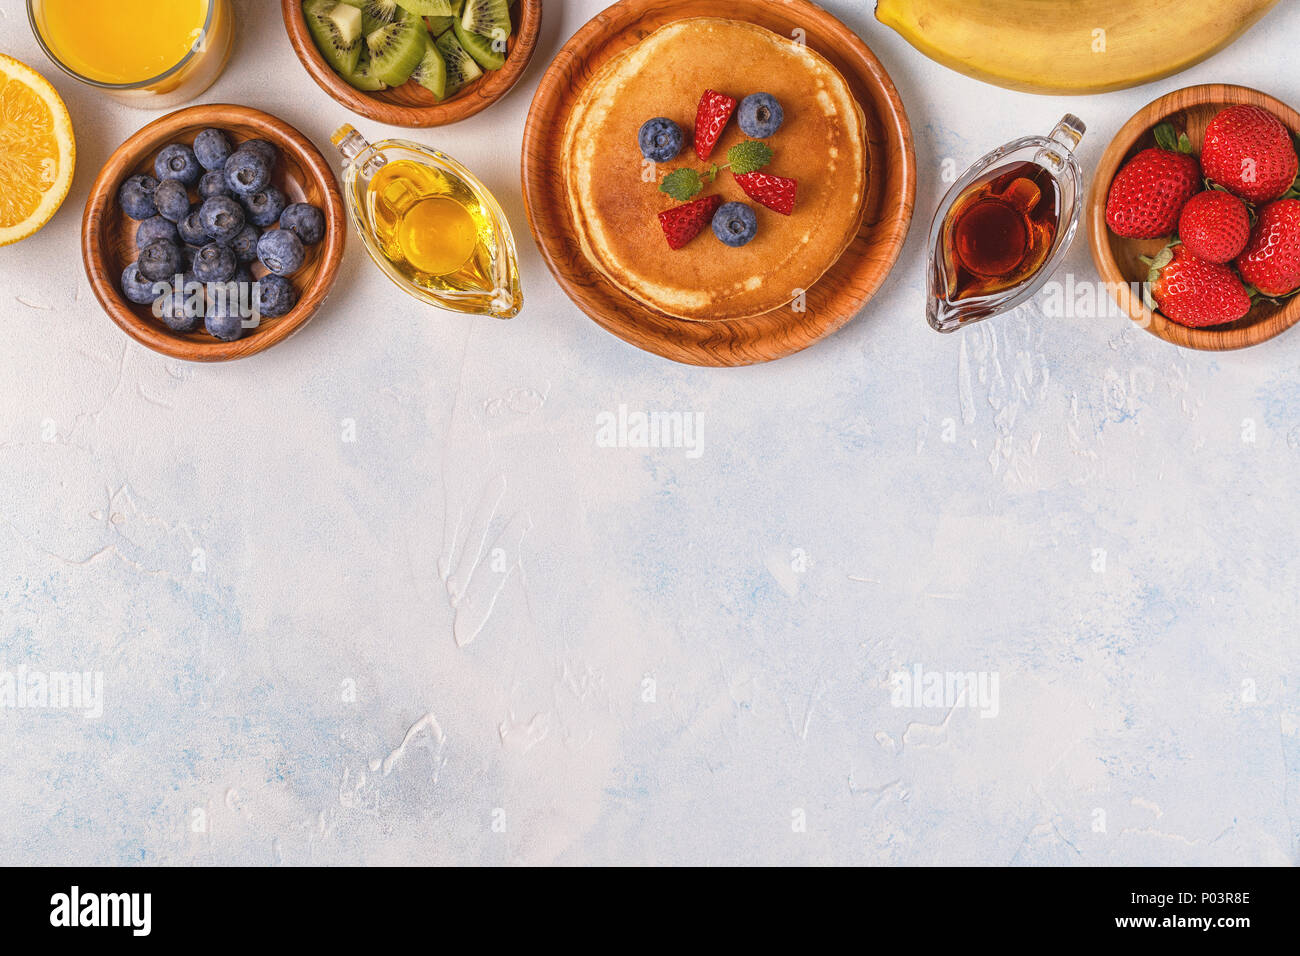 Pancakes with fruit, honey, maple syrup. Top view. - Stock Image